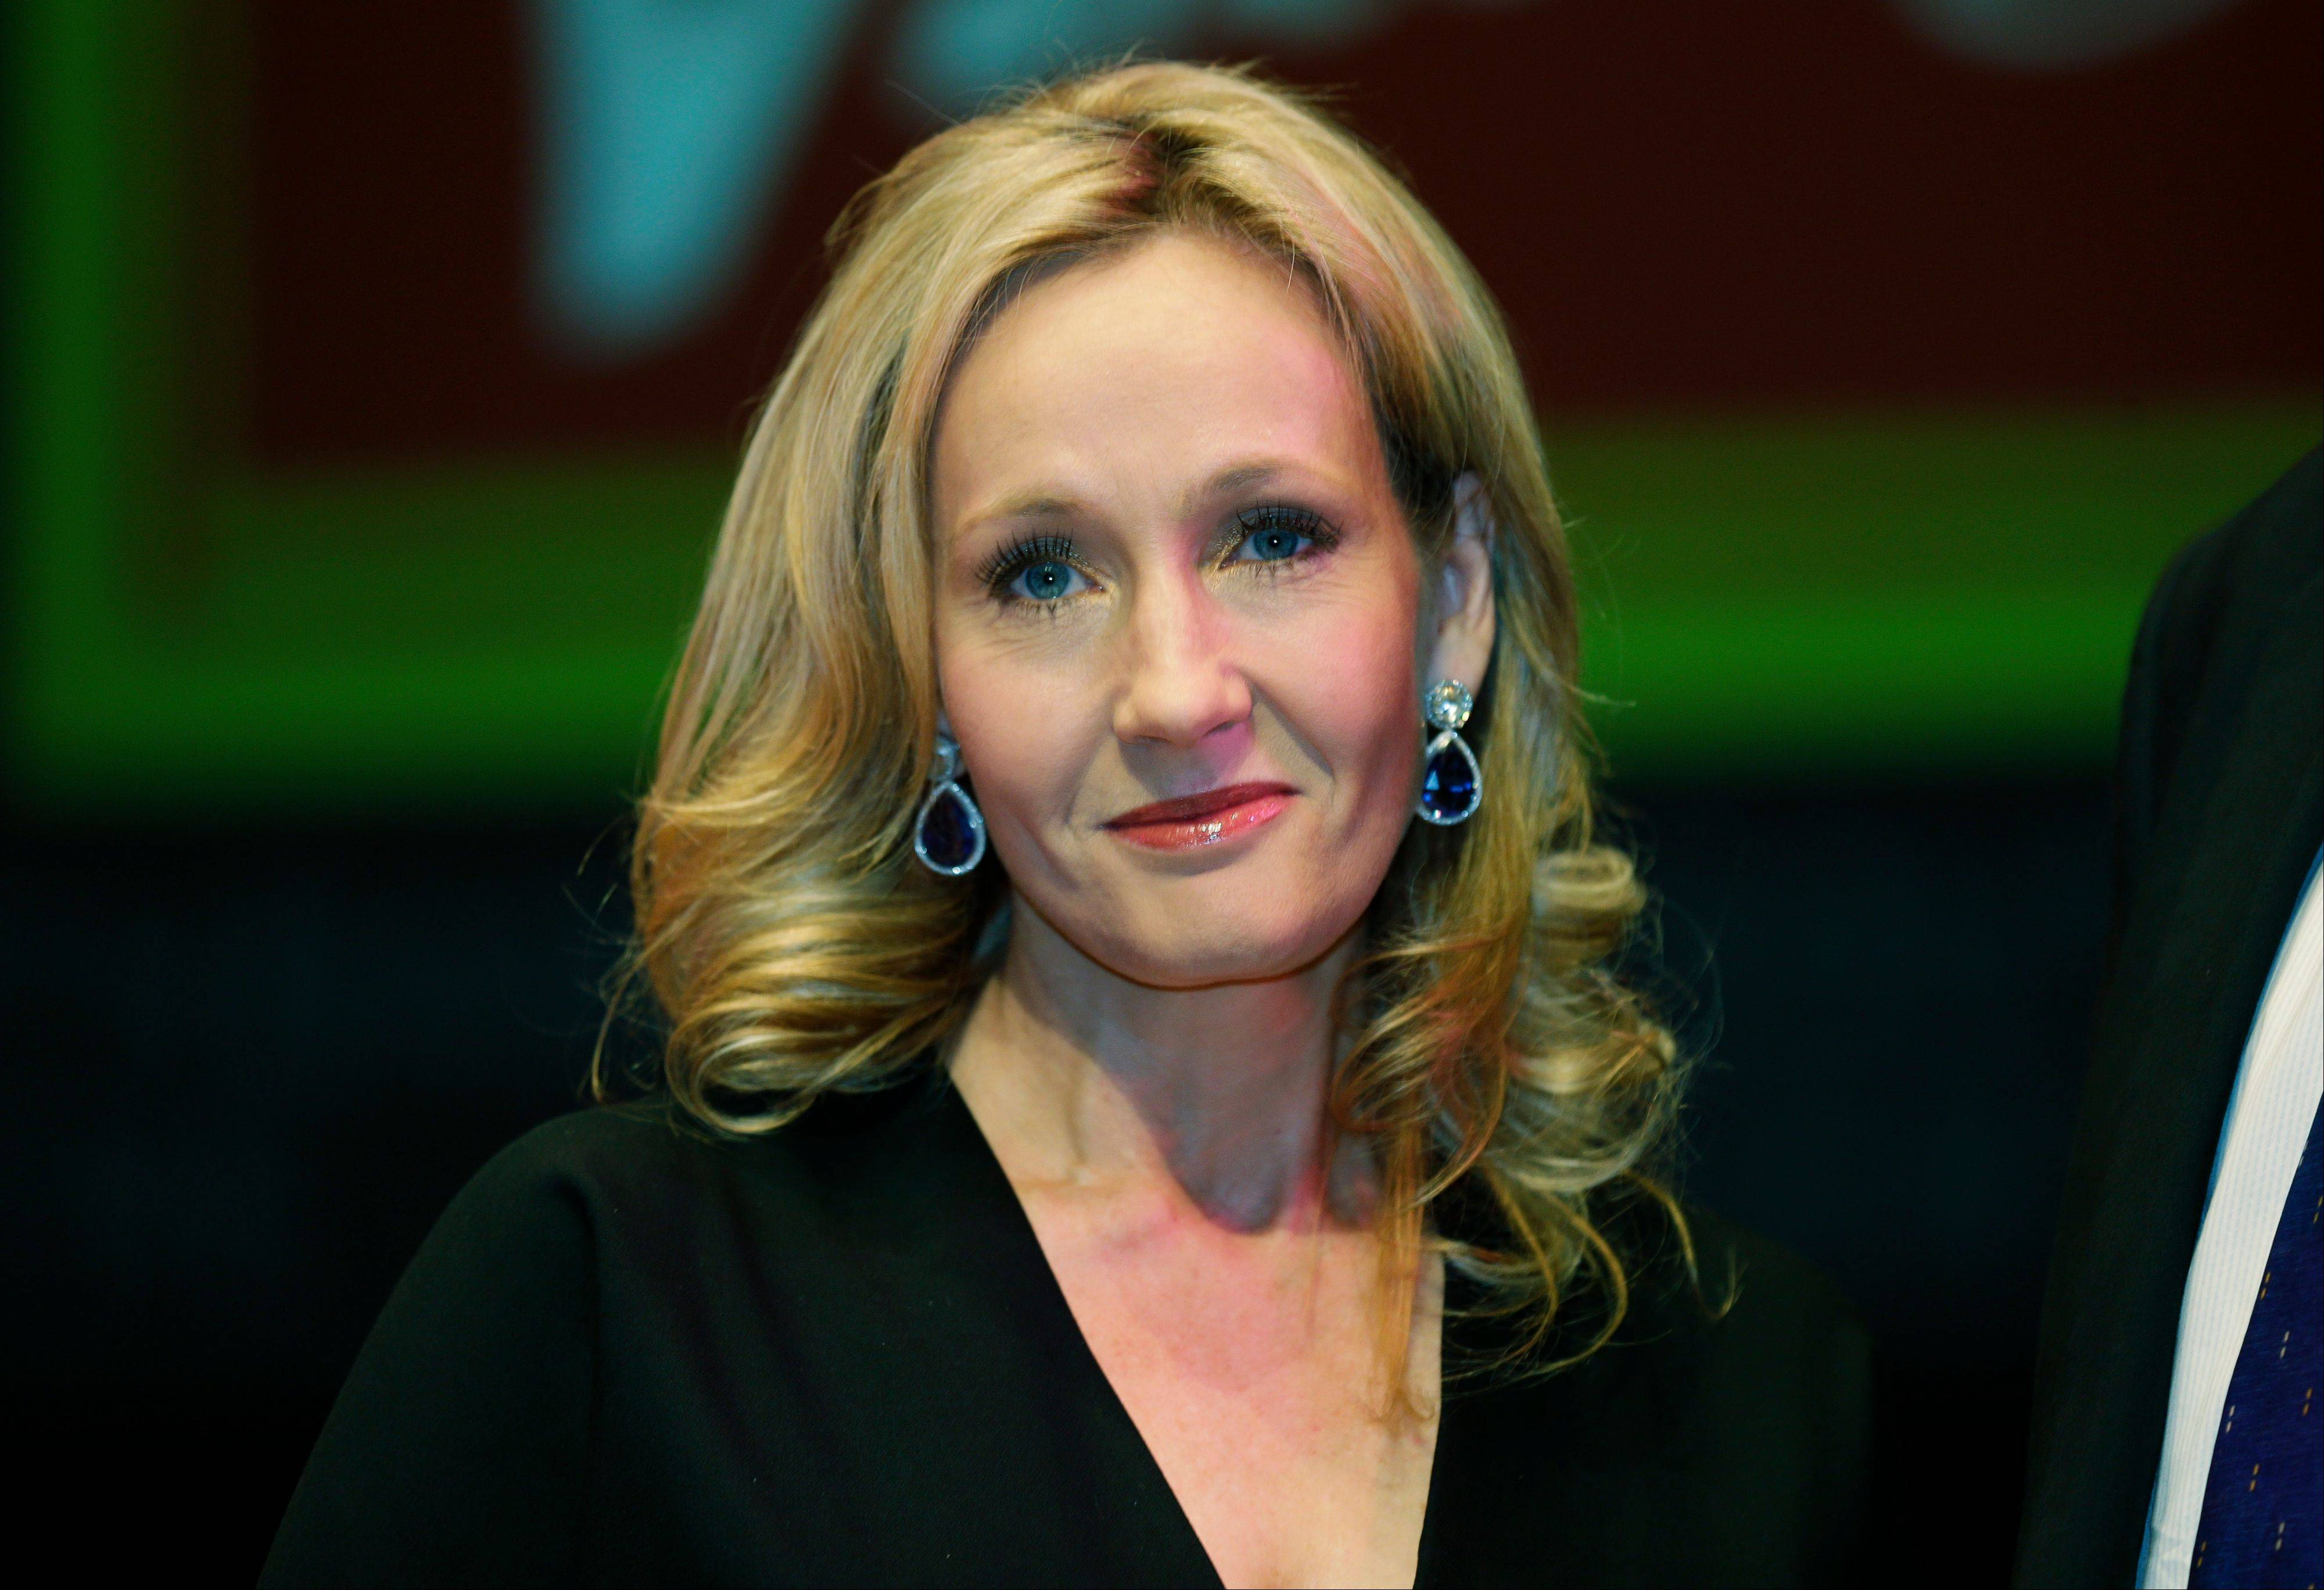 Author J.K. Rowling has accepted a charitable donation from a law firm that revealed she wrote a crime novel under a pseudonym. The Harry Potter author says her crime-writing alter ego, Robert Galbraith, had respectable sales before being exposed in the Sunday Times as a pseudonym.